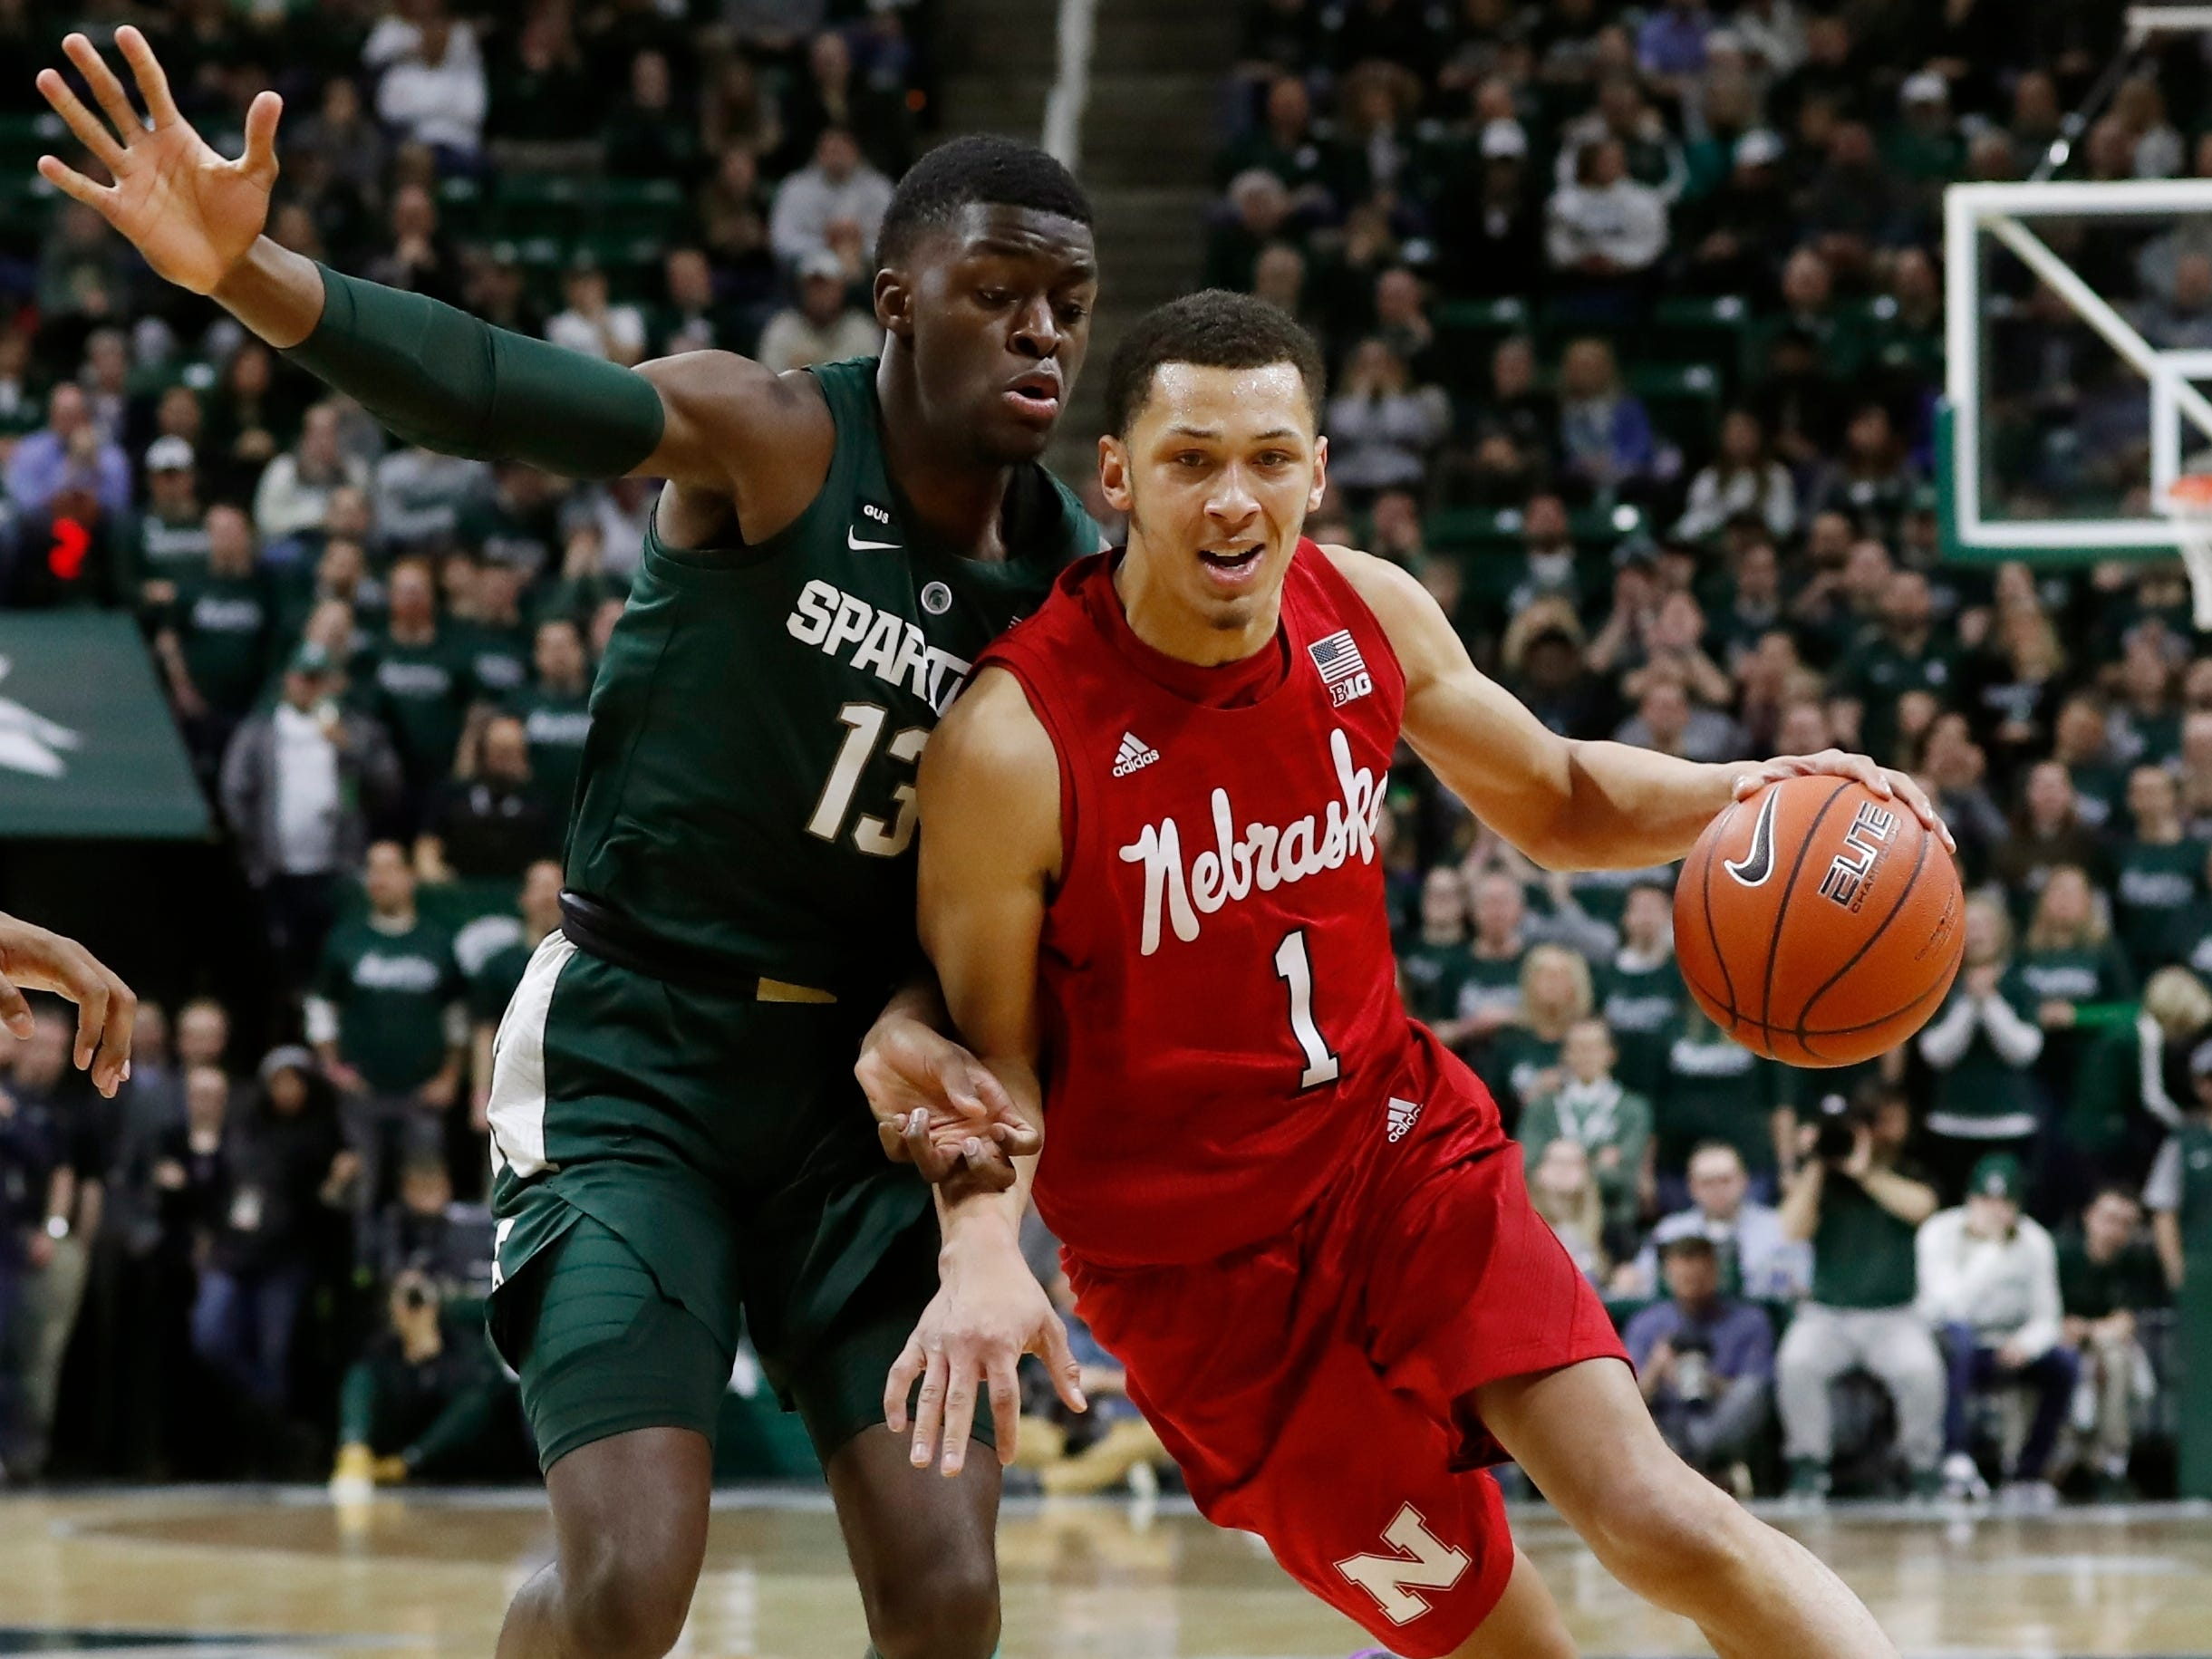 Nebraska guard Amir Harris drives against the defense of Gabe Brown, who played a big role for the Spartans Tuesday night.